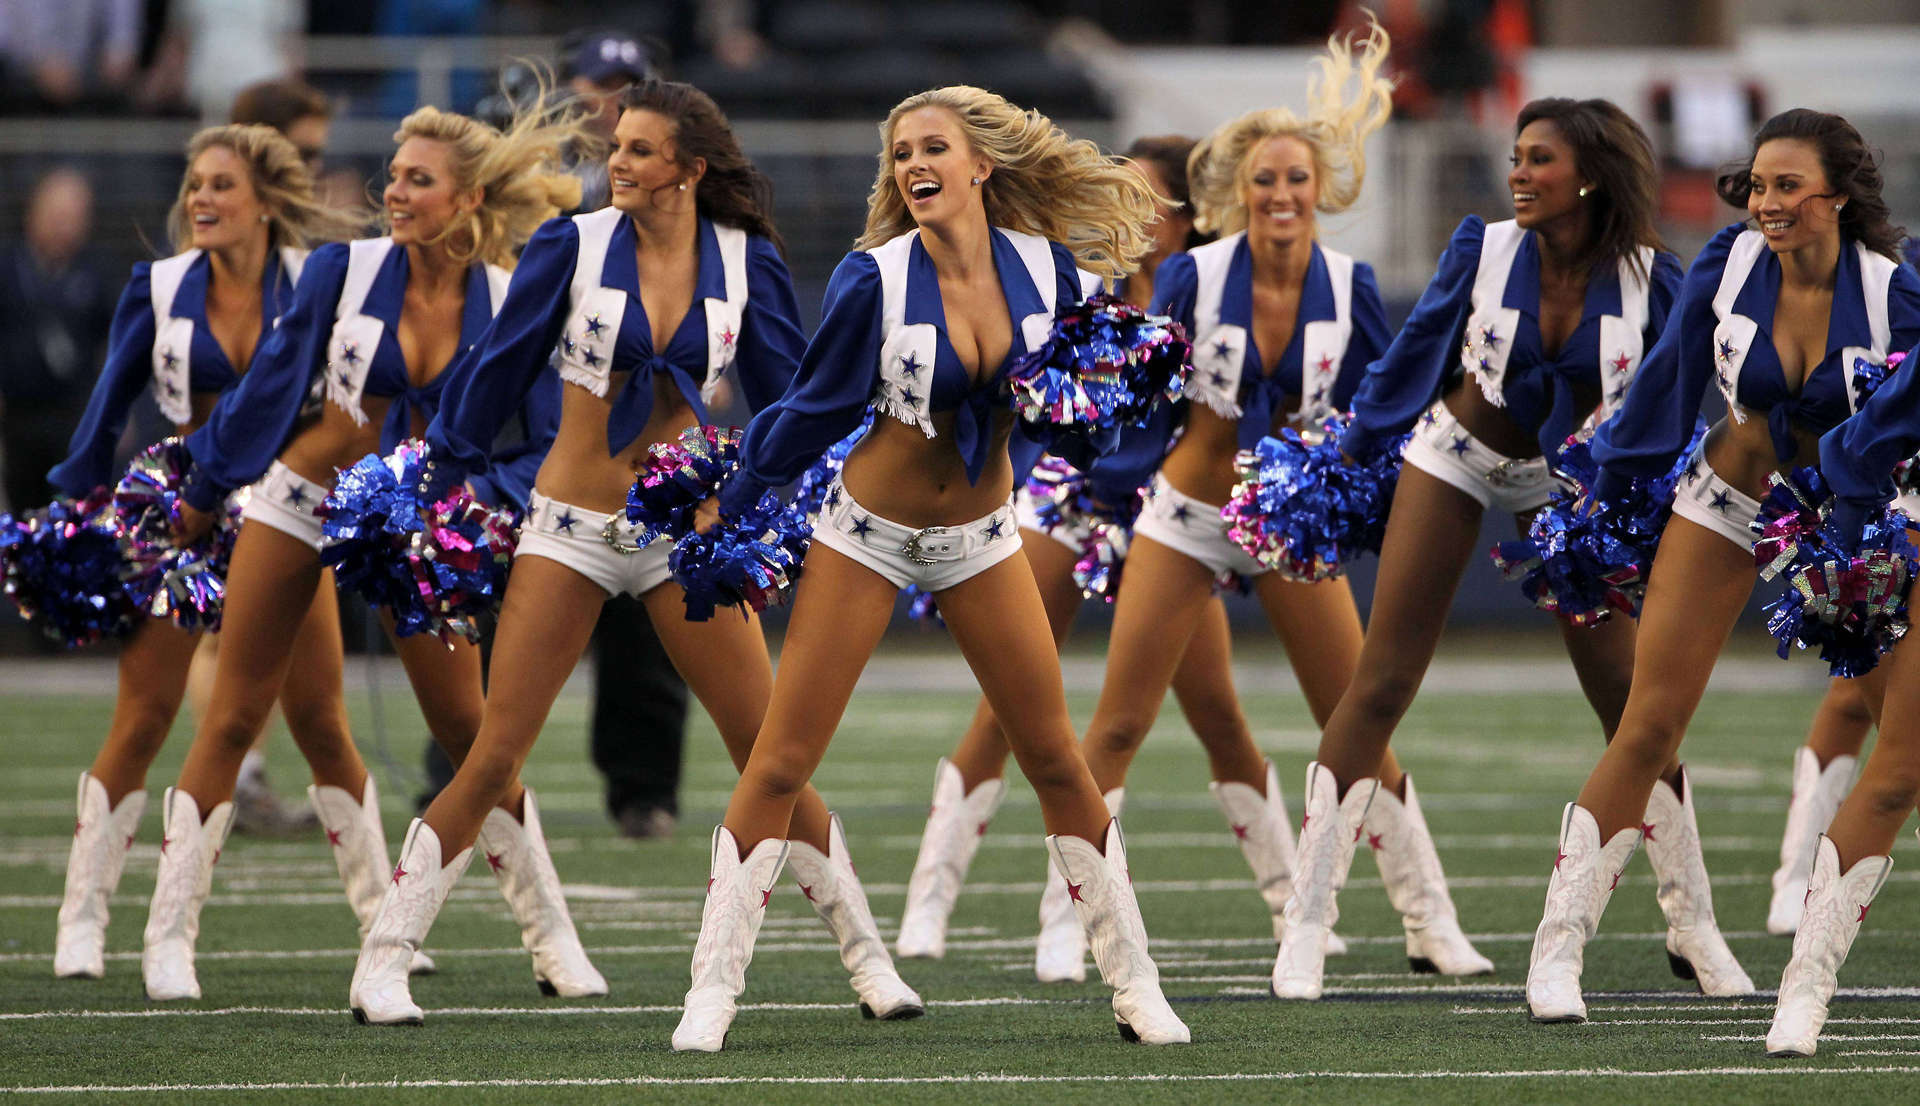 nfl cheerleader outfits dallas cowboys cheerleaders all